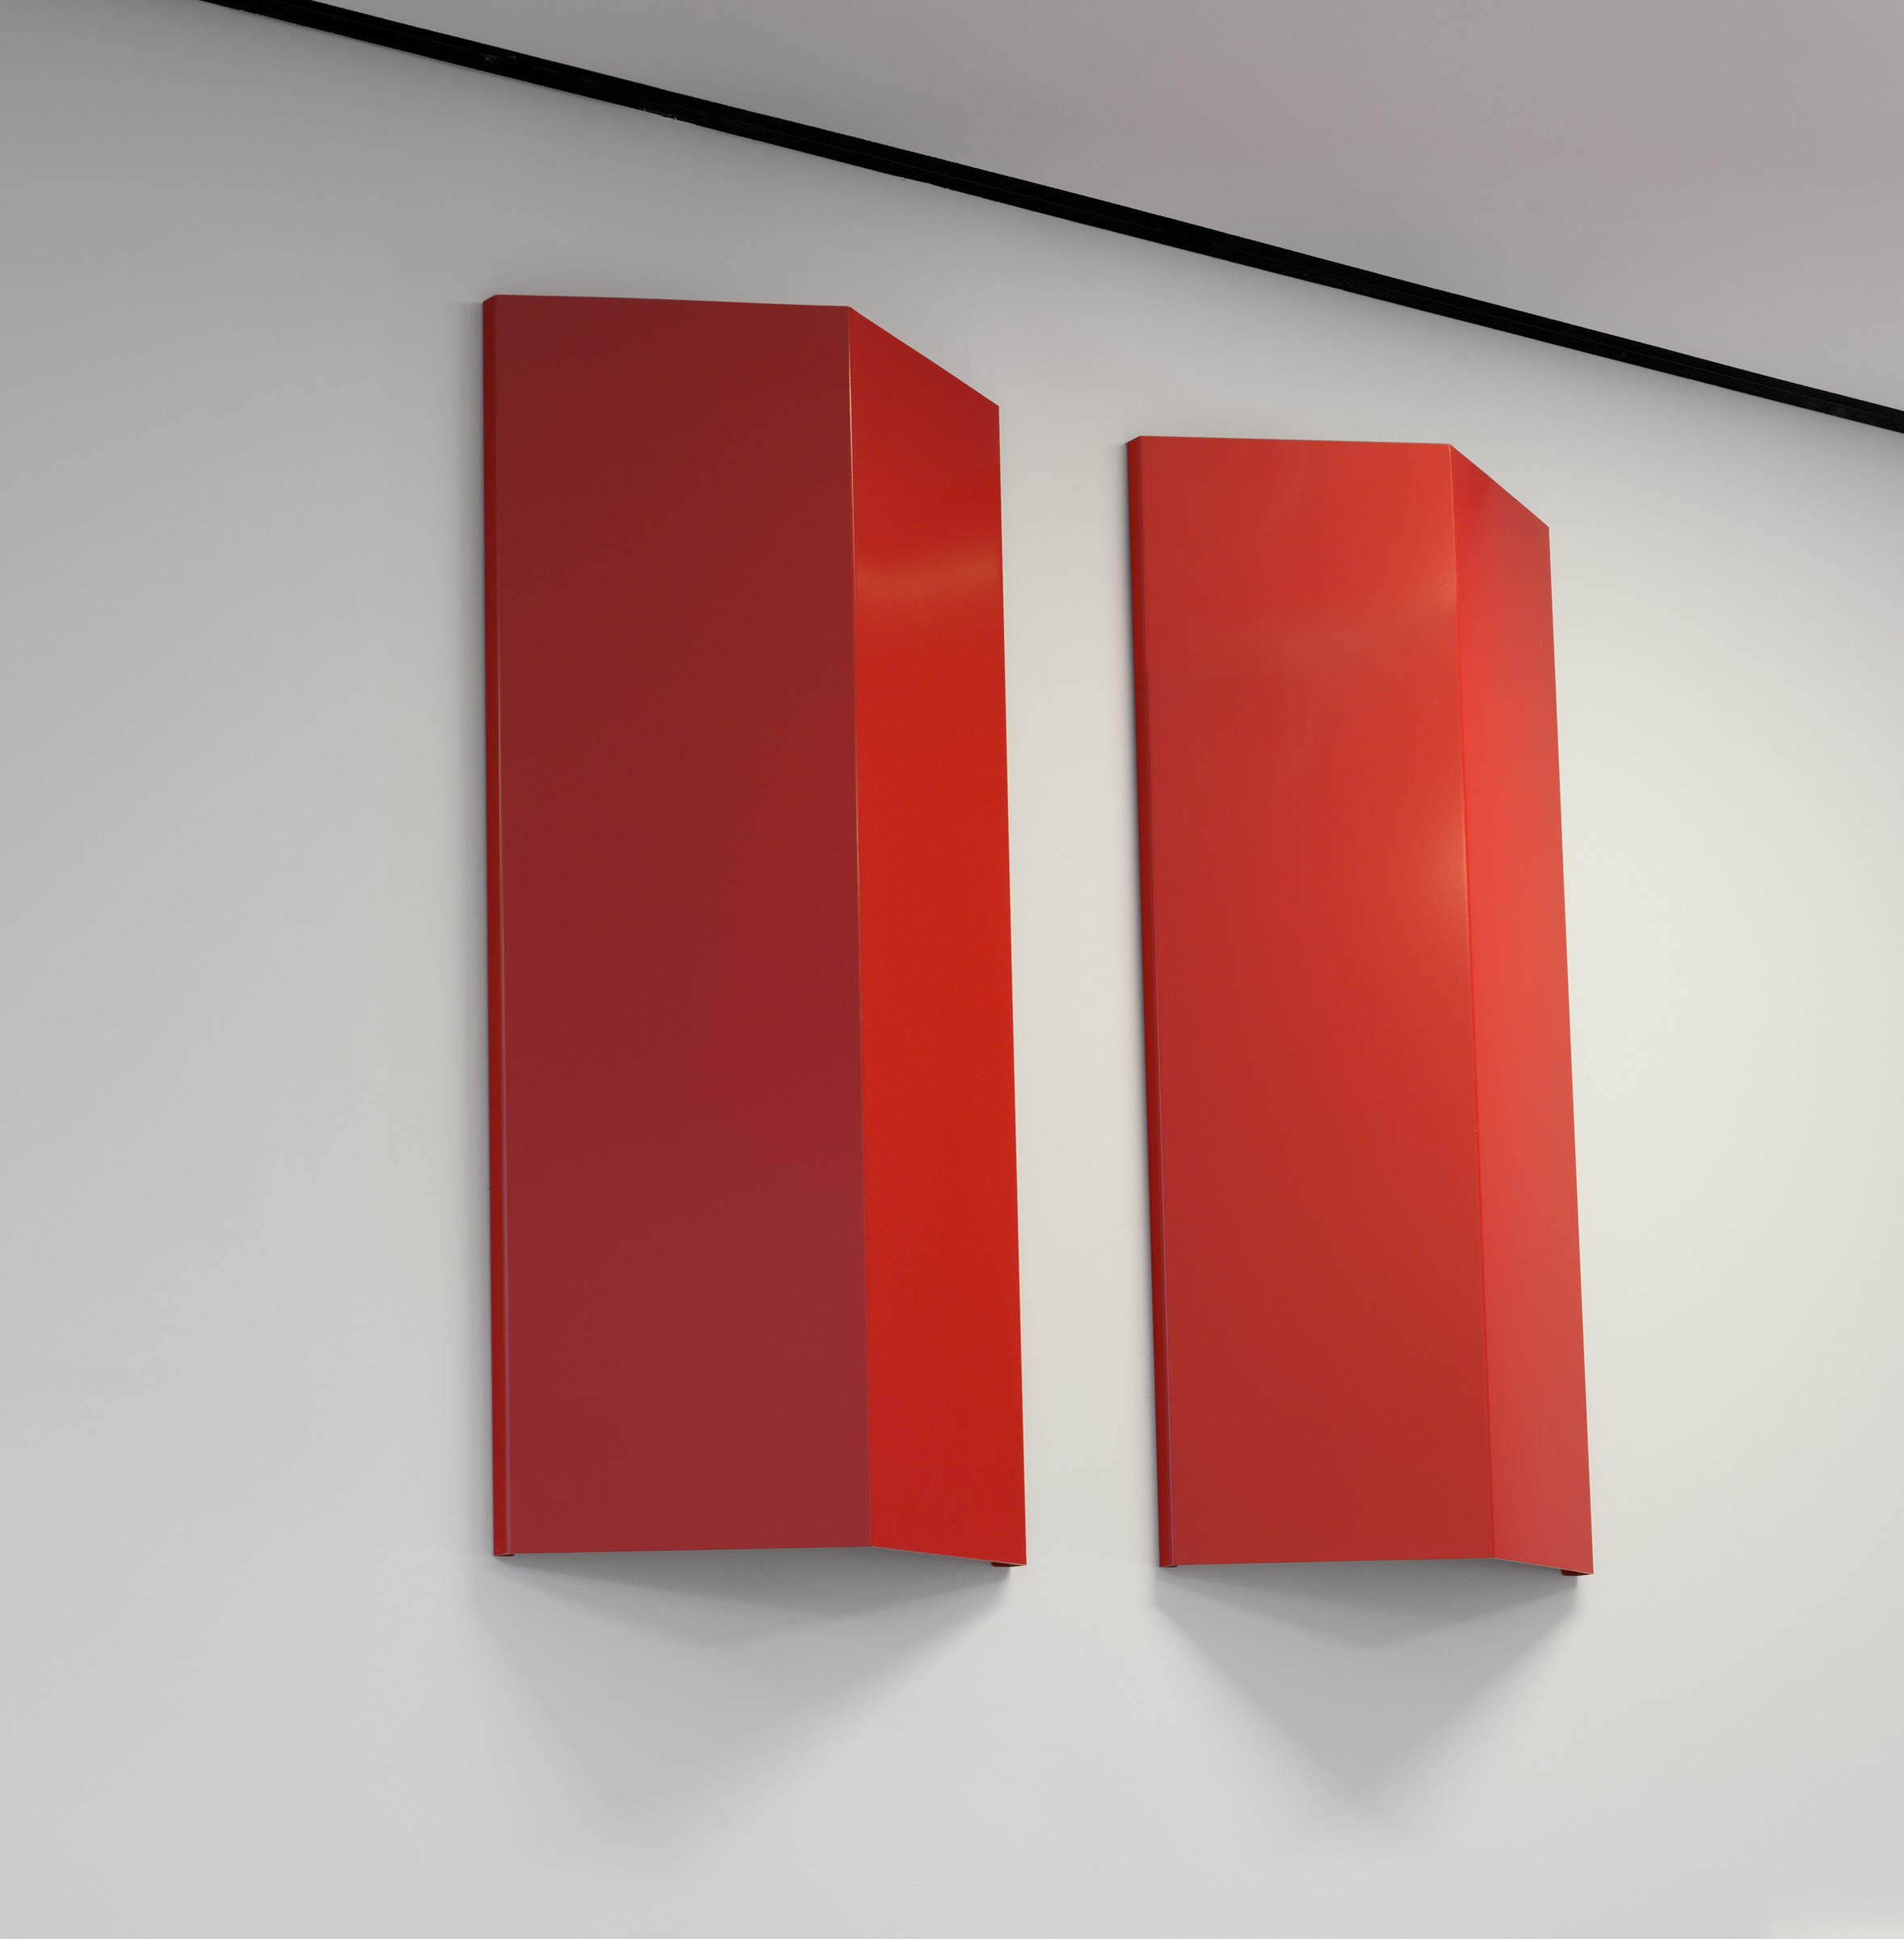 Two identical, red-painted aluminum sheets, each folded convexly, are mounted in a vertical orientation and parallel to each other on a white wall.